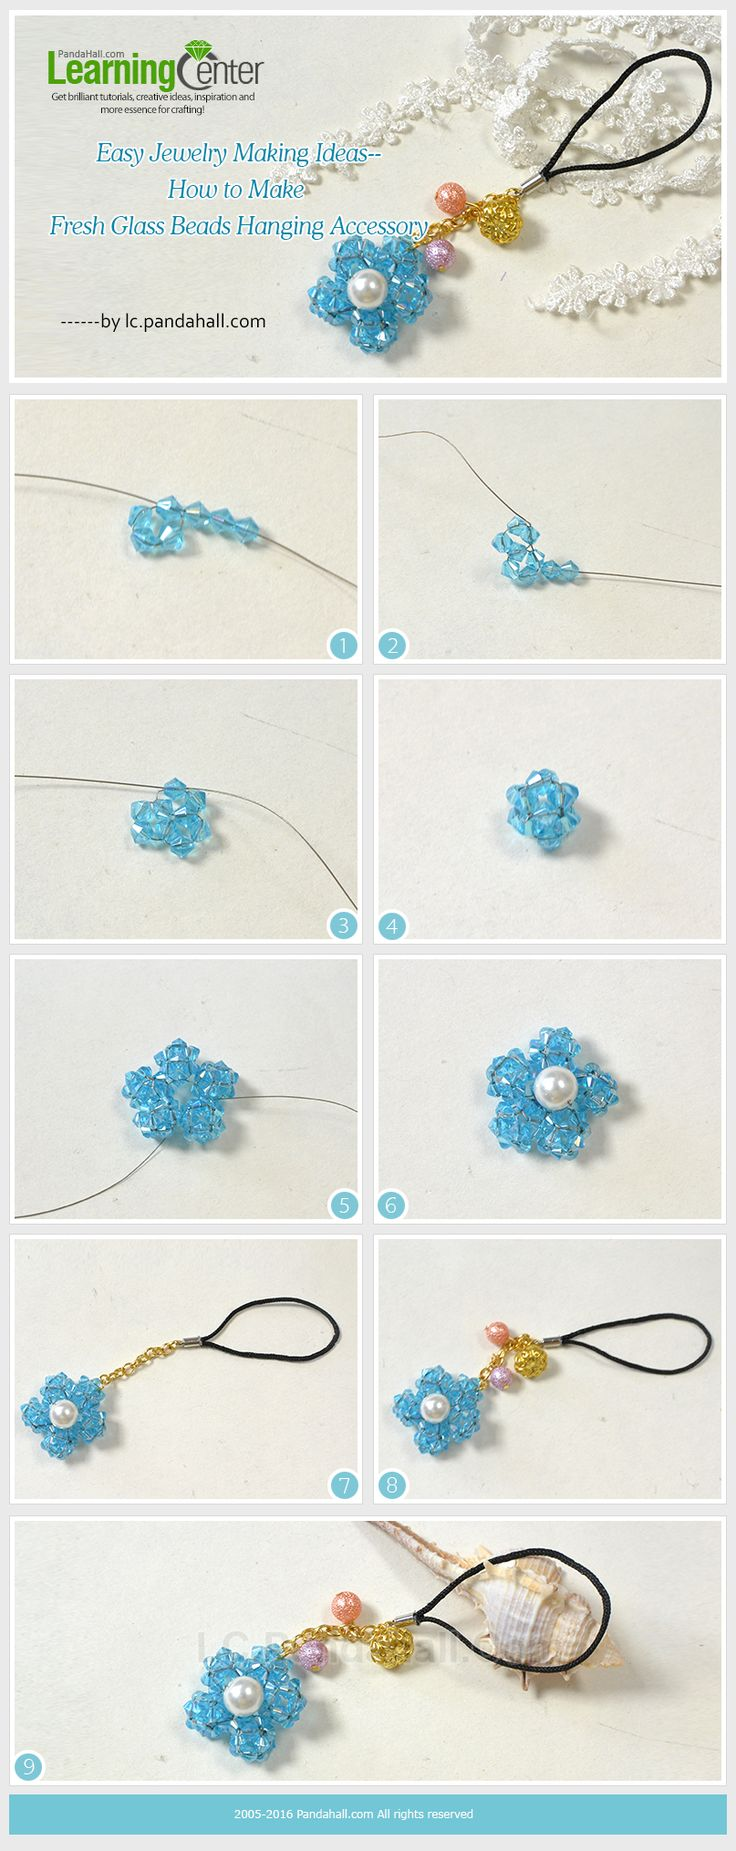 Easy jewelry making ideas how to make fresh glass beads for How to make beads craft